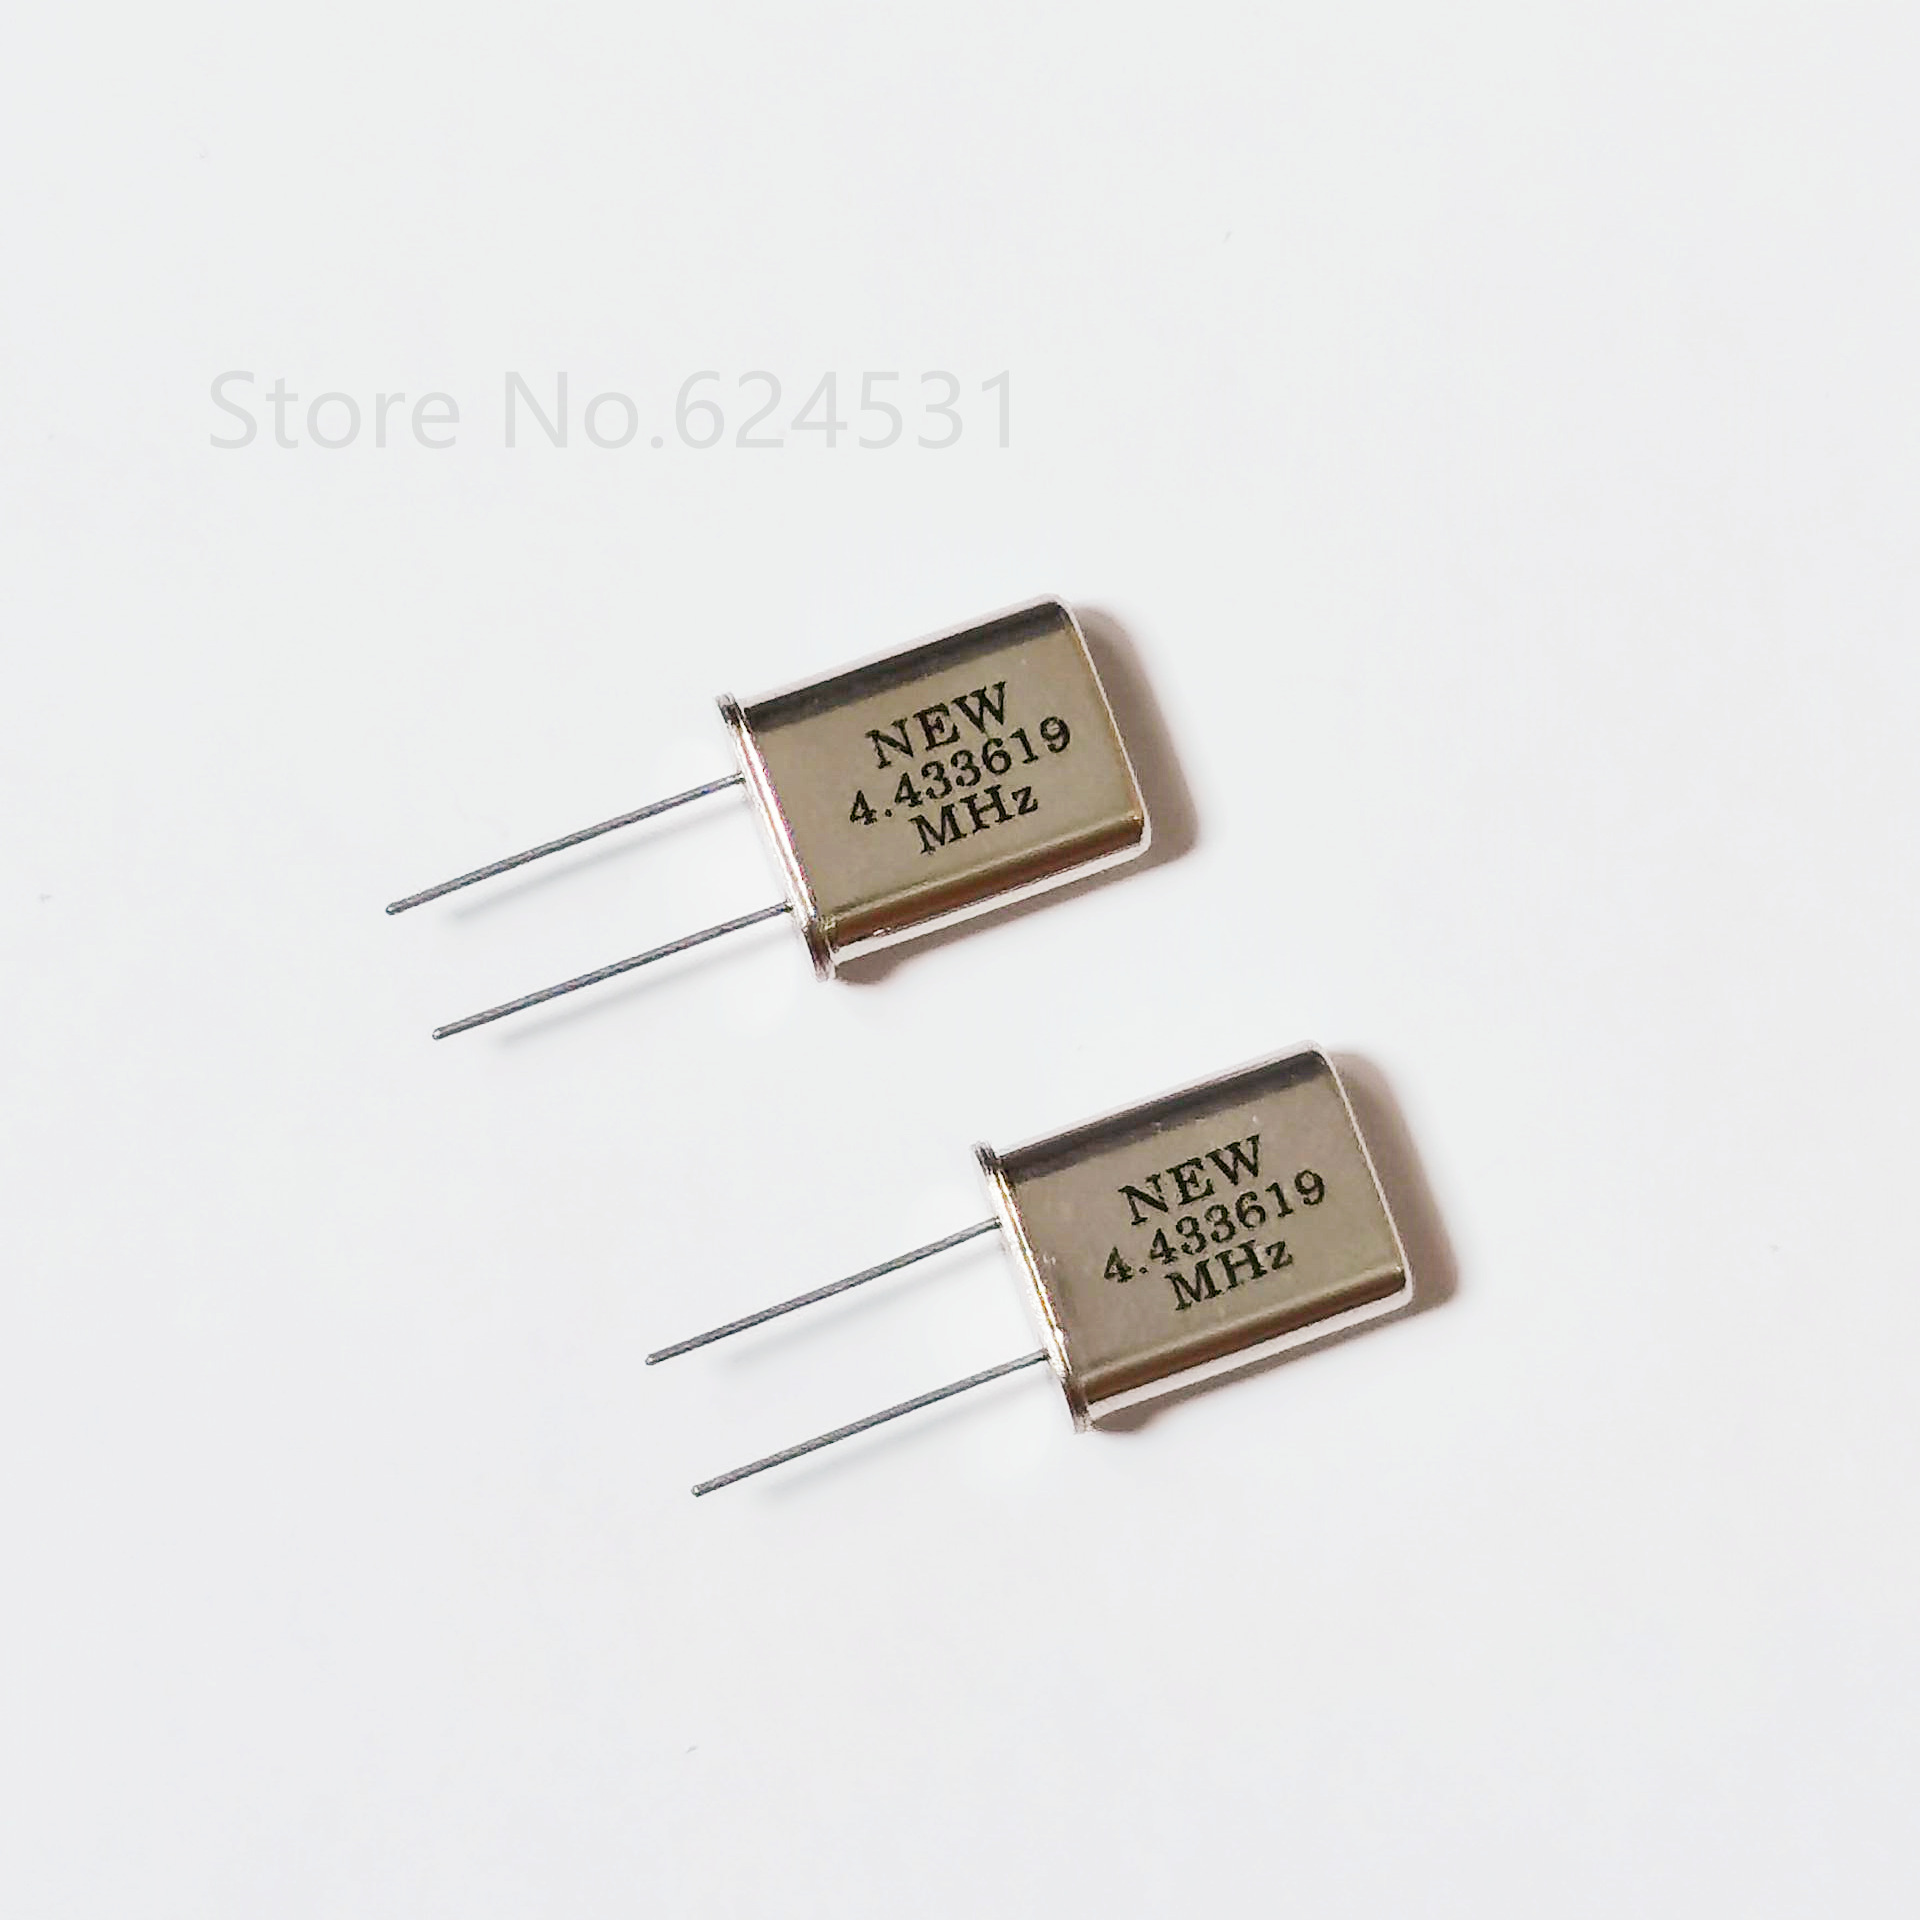 10pcs In-line Passive Quartz Crystal Oscillator HC-49U 4.433619MHZ 4.433MHZ Crystal Resonator